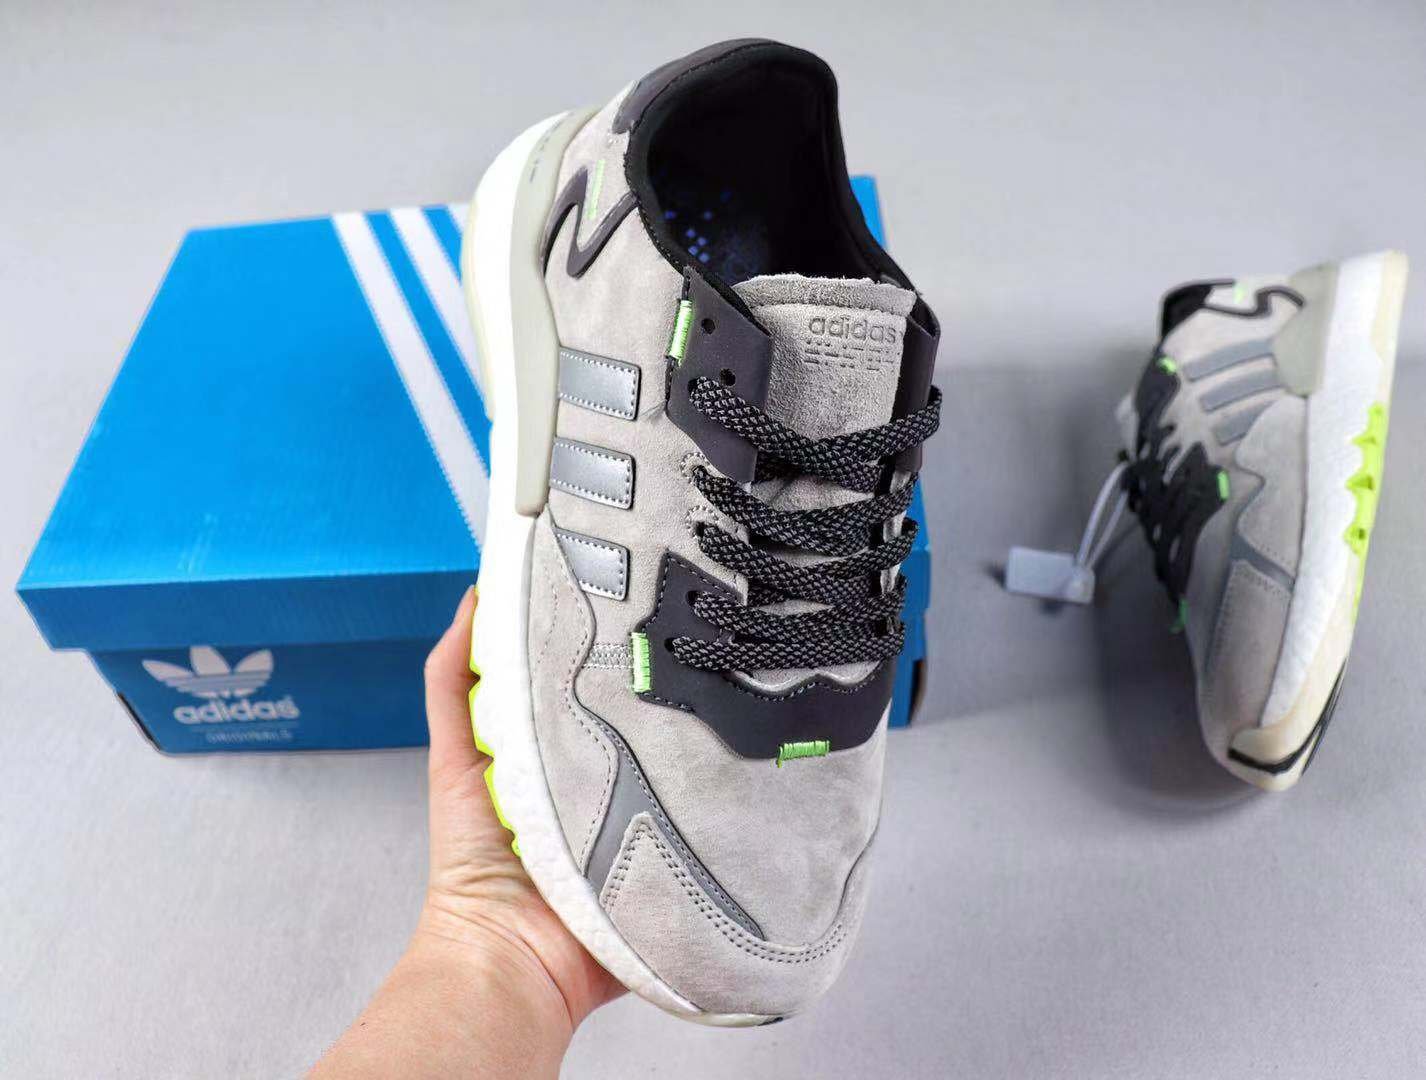 Adidas Nite Jogger 2019 Boost Wolf Grey/Black-Grey Best Sell Shoes EG4935